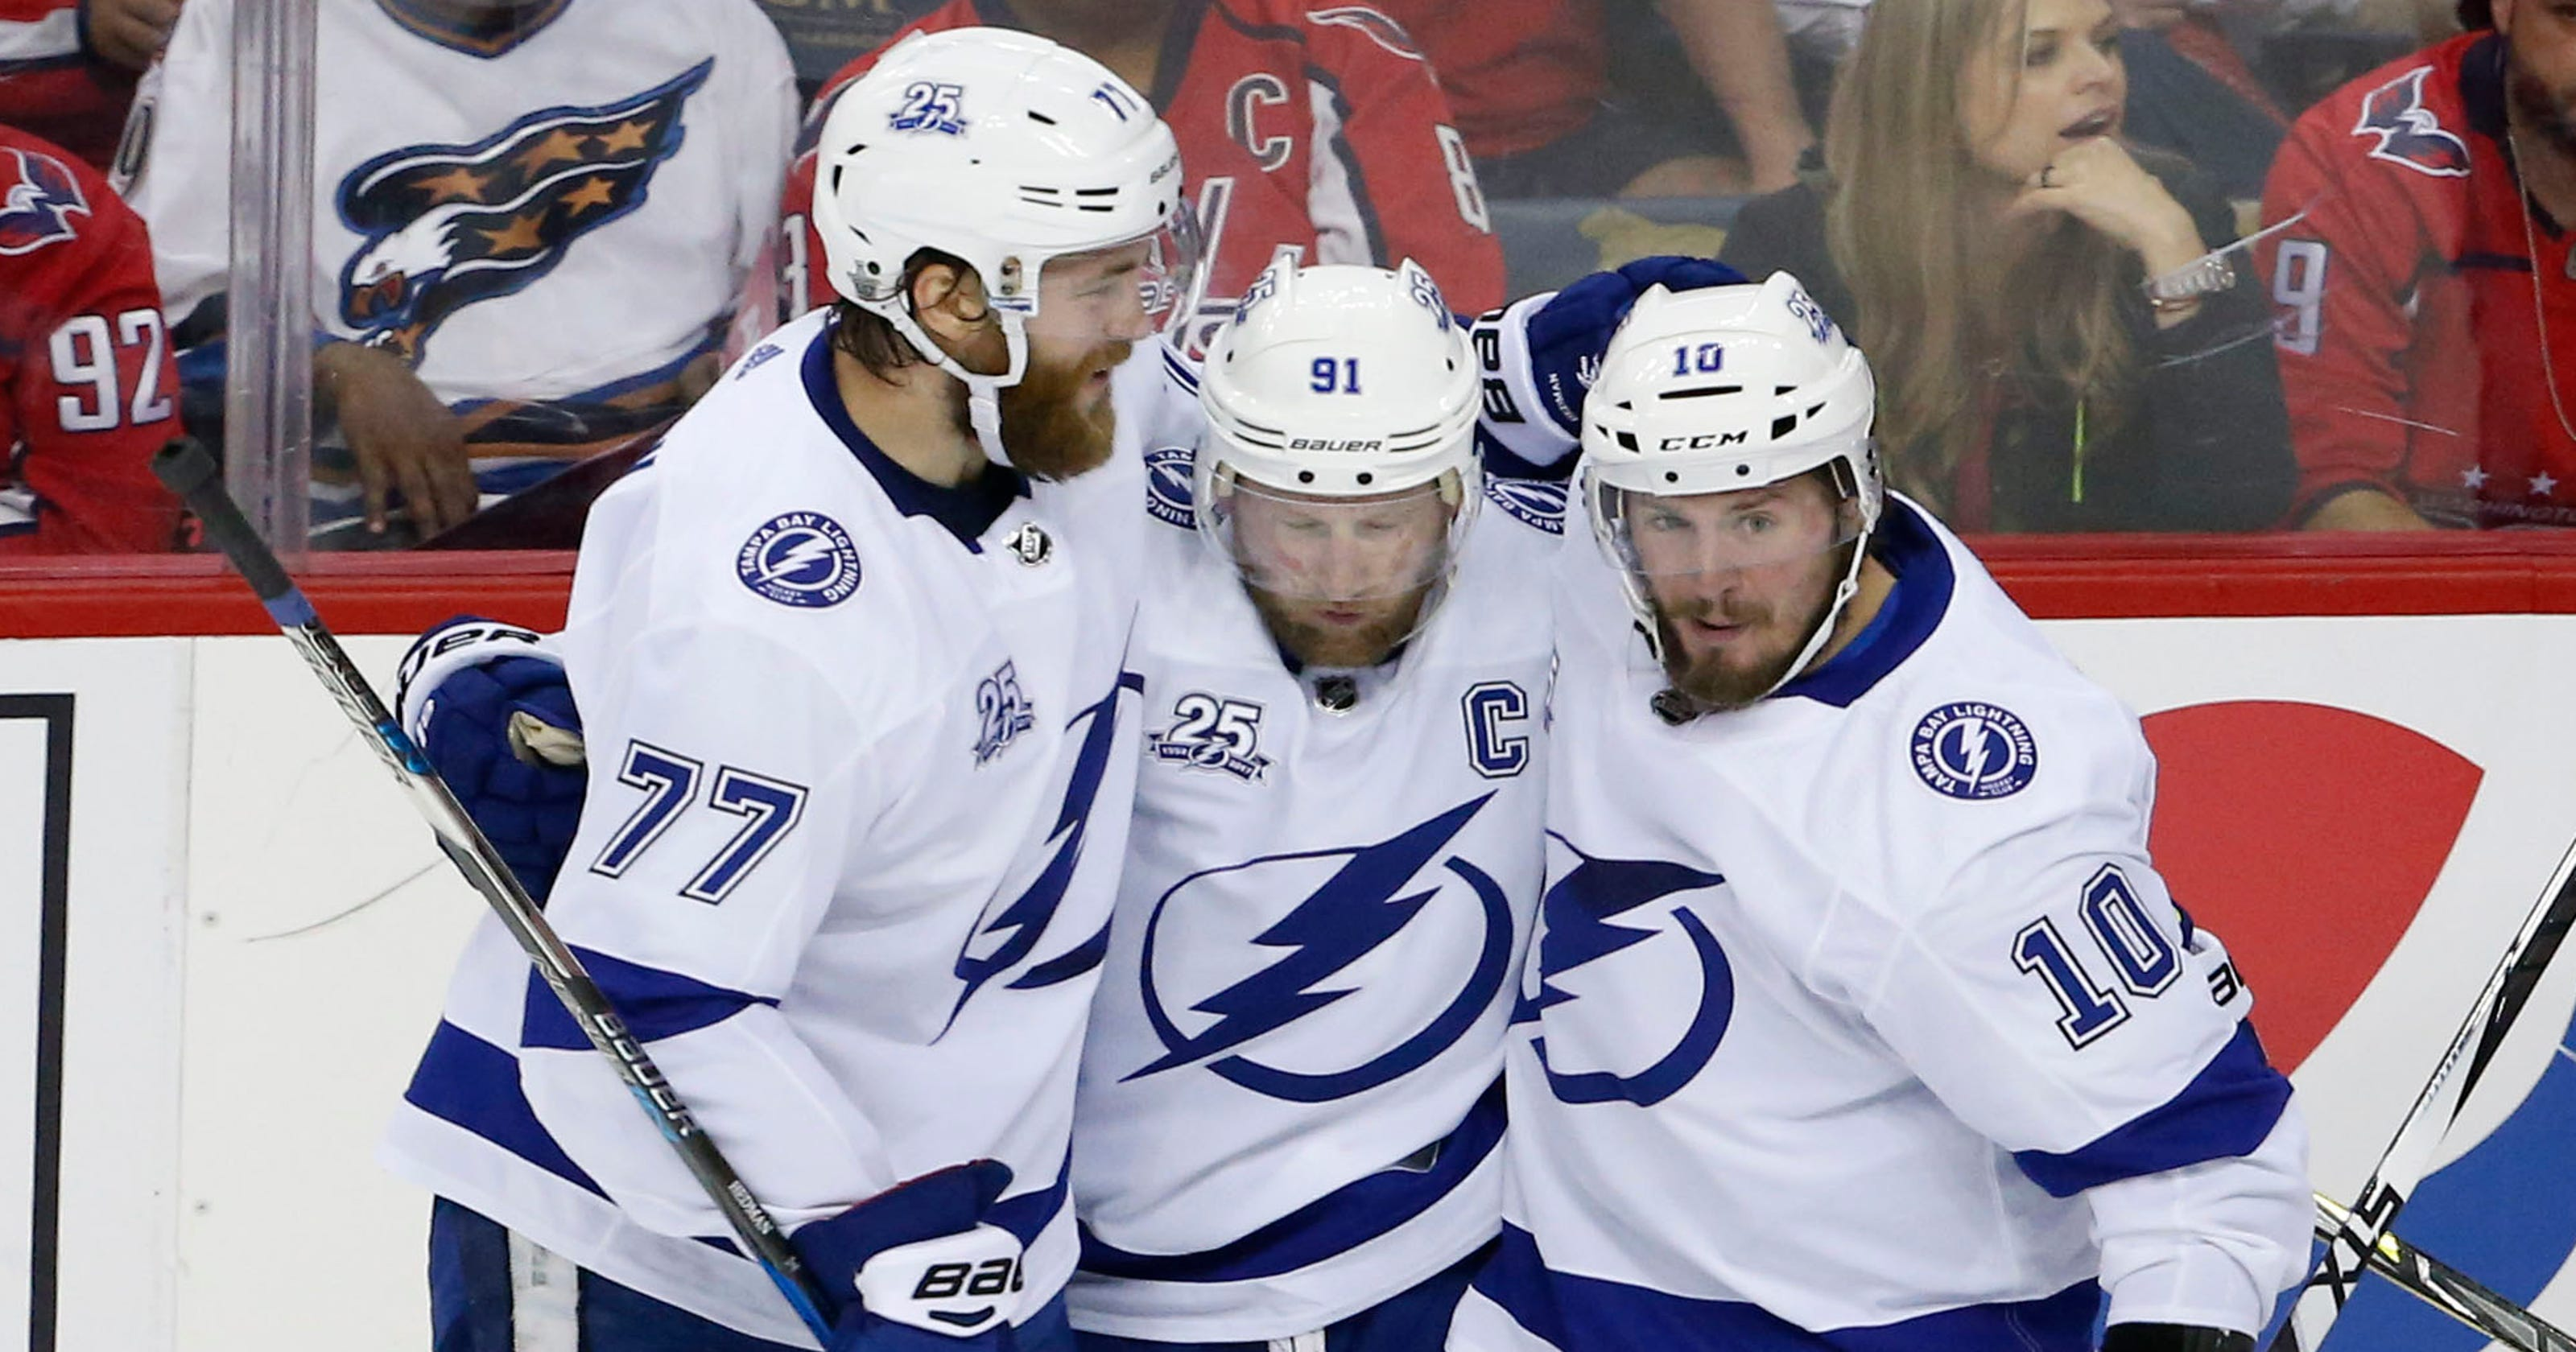 a24352364d7 NHL playoffs  Stamkos lifts Lightning back into series vs. Capitals